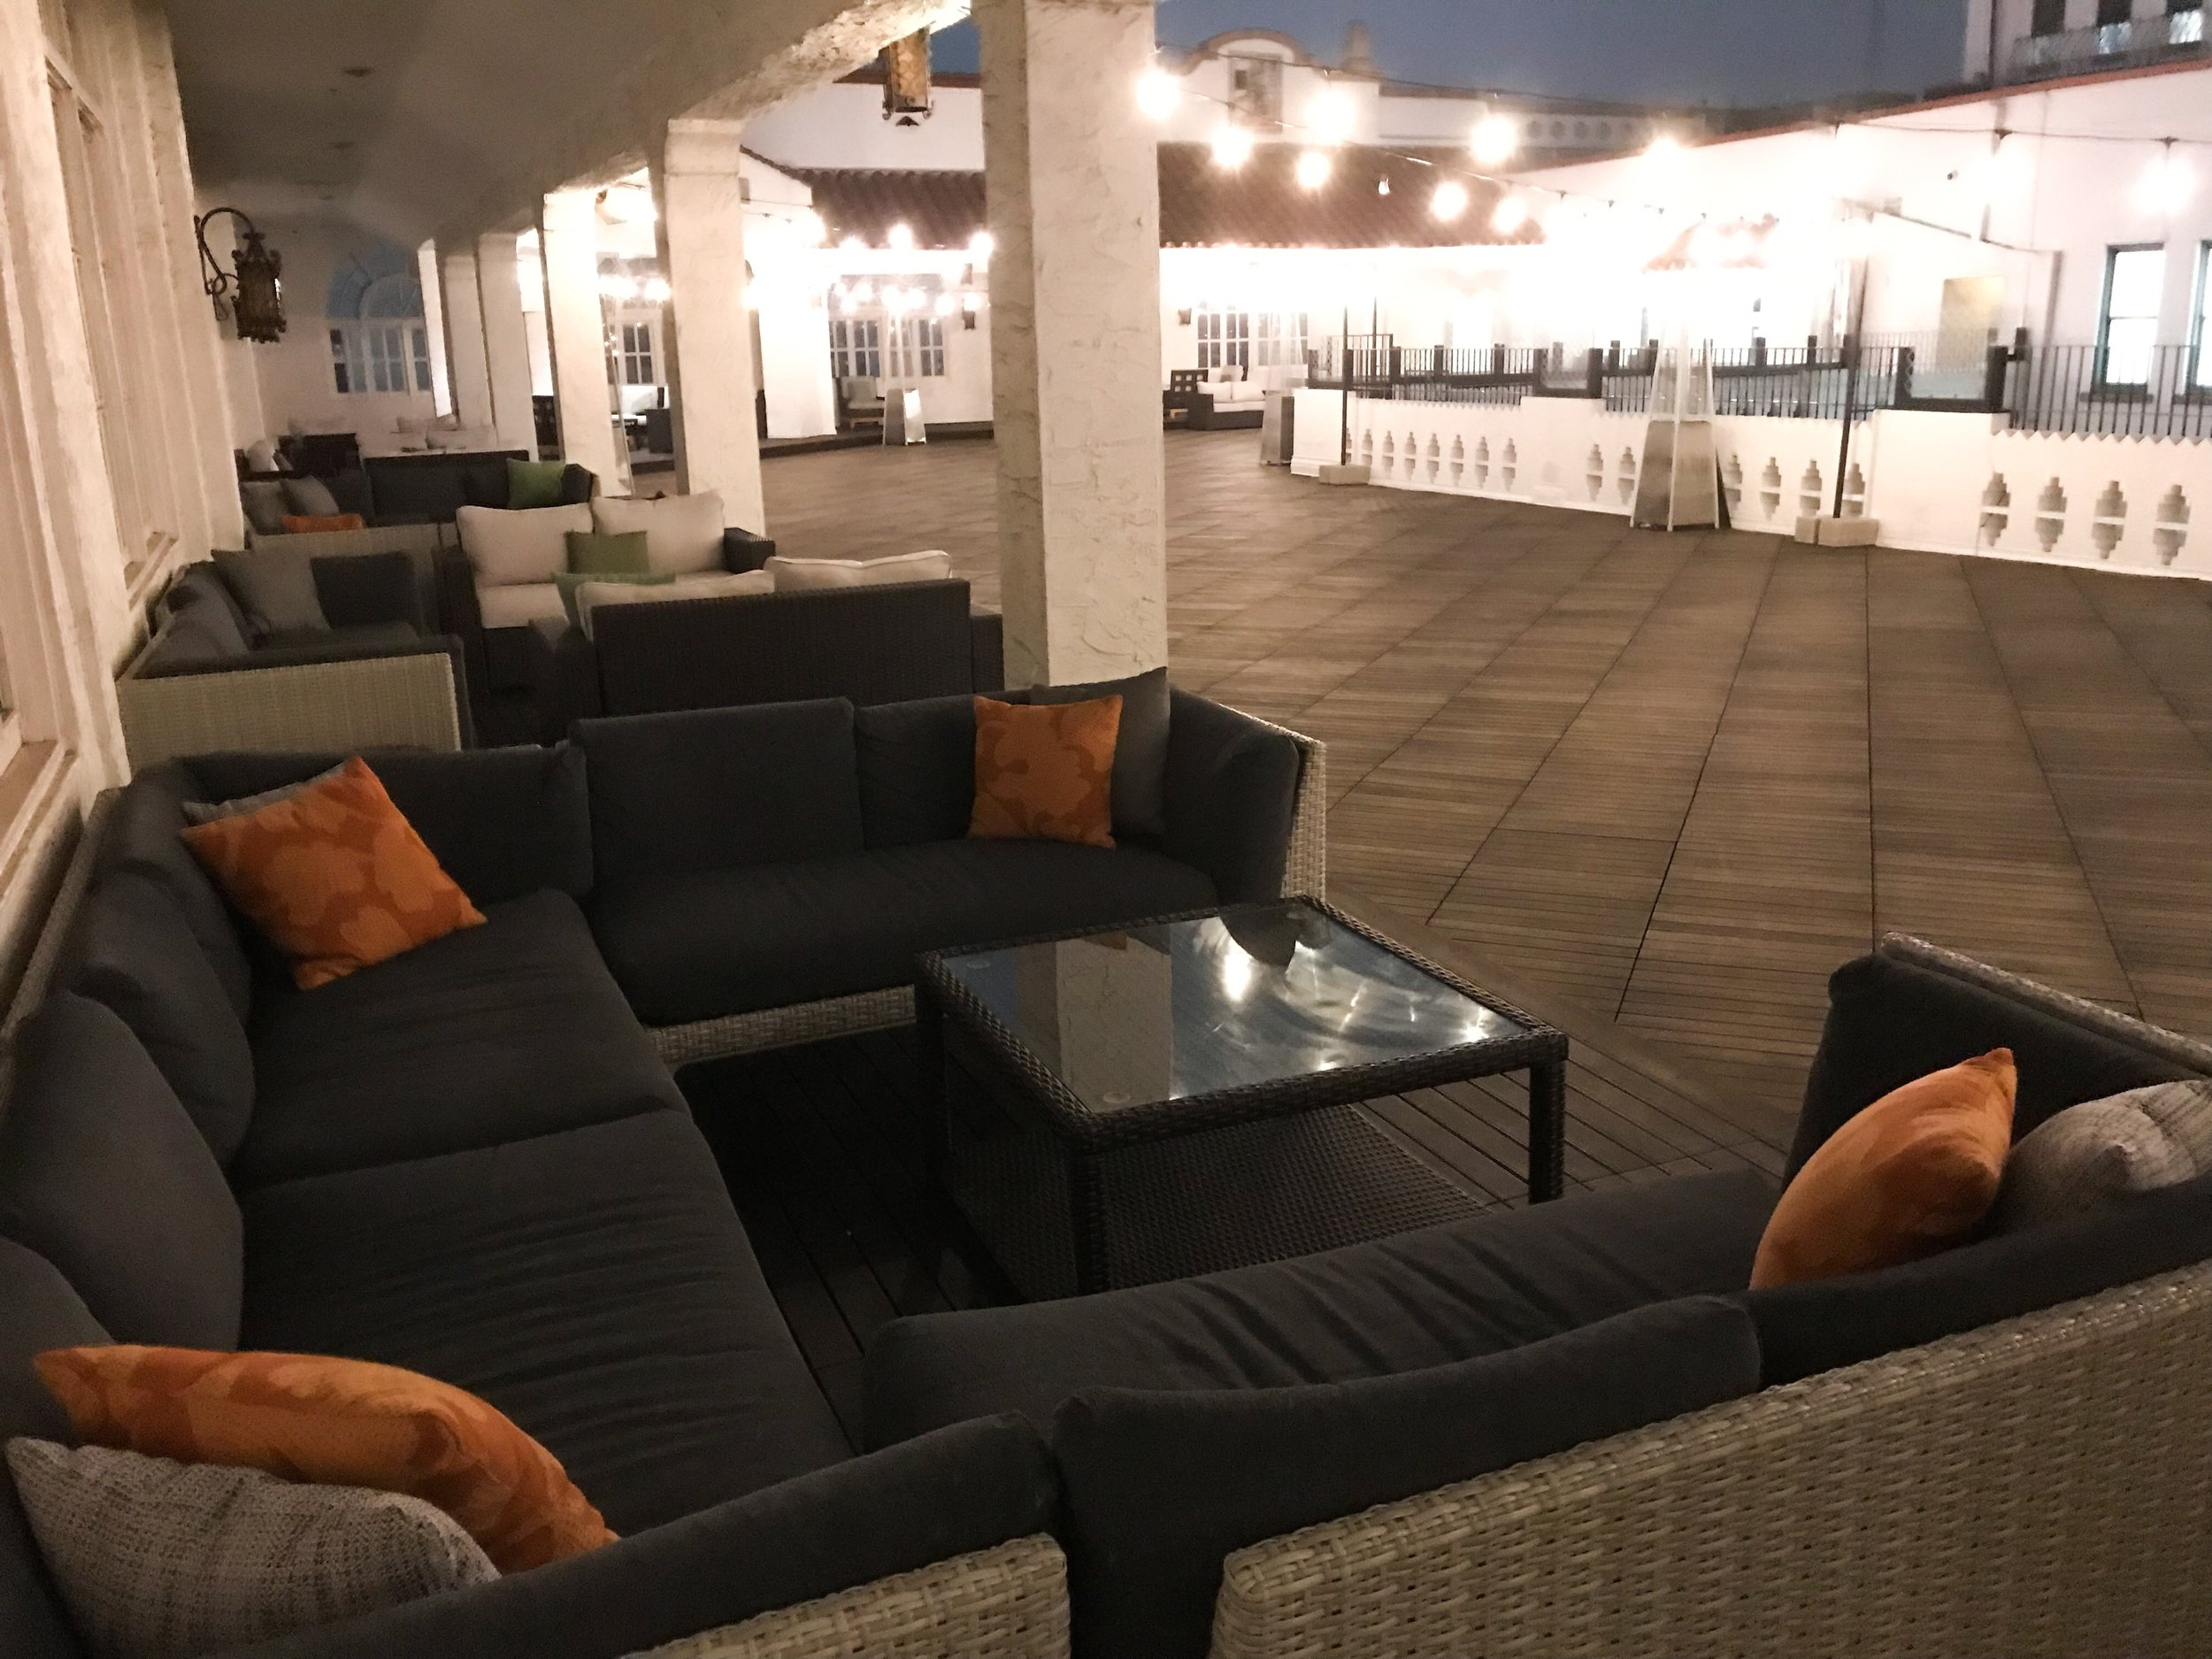 The outdoor patio had covered seating.